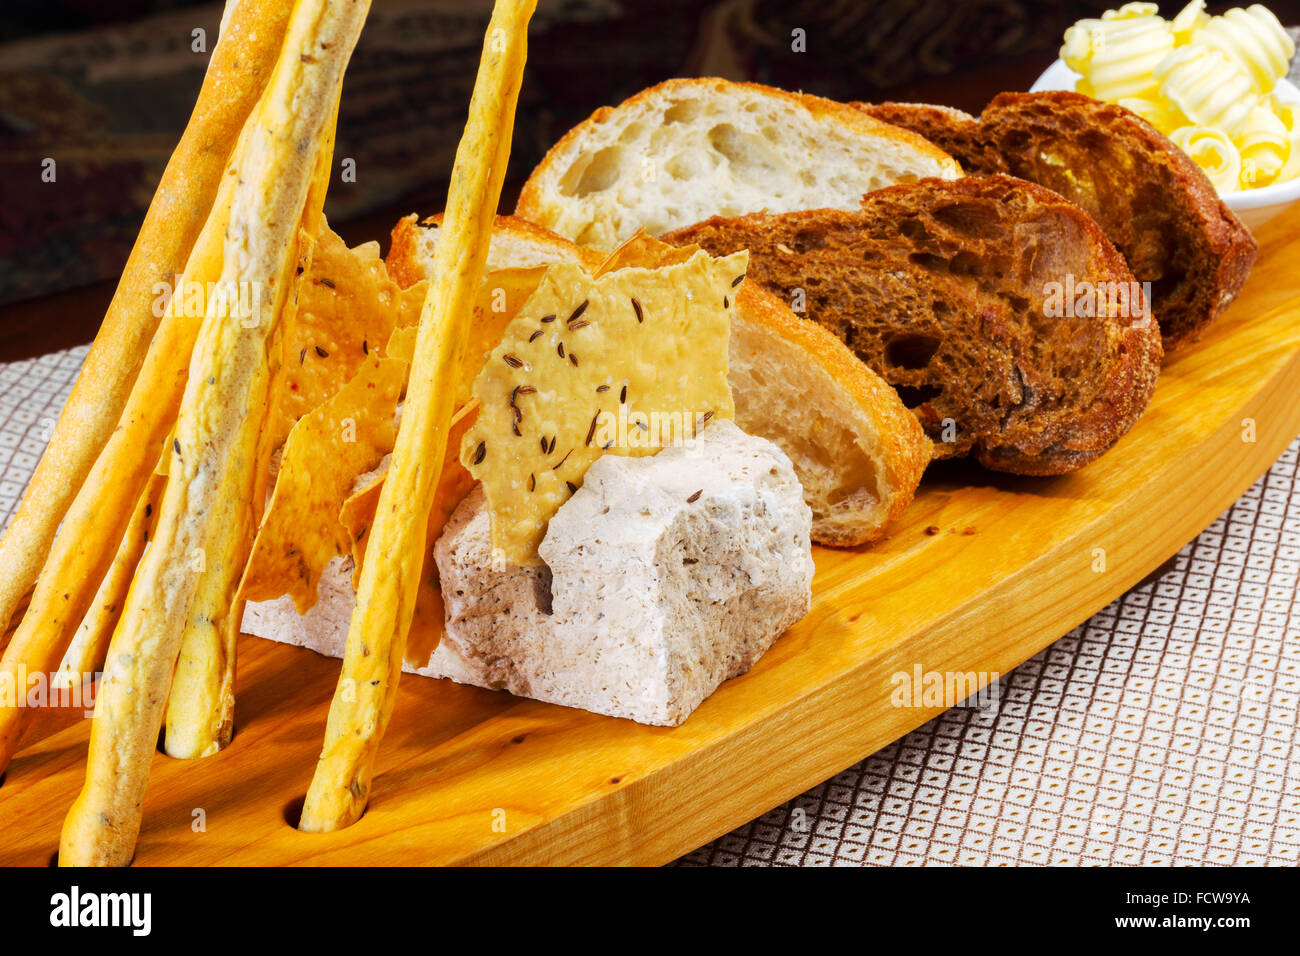 Various kinds of fresh baked bread loaves in wooden tray Stock Photo